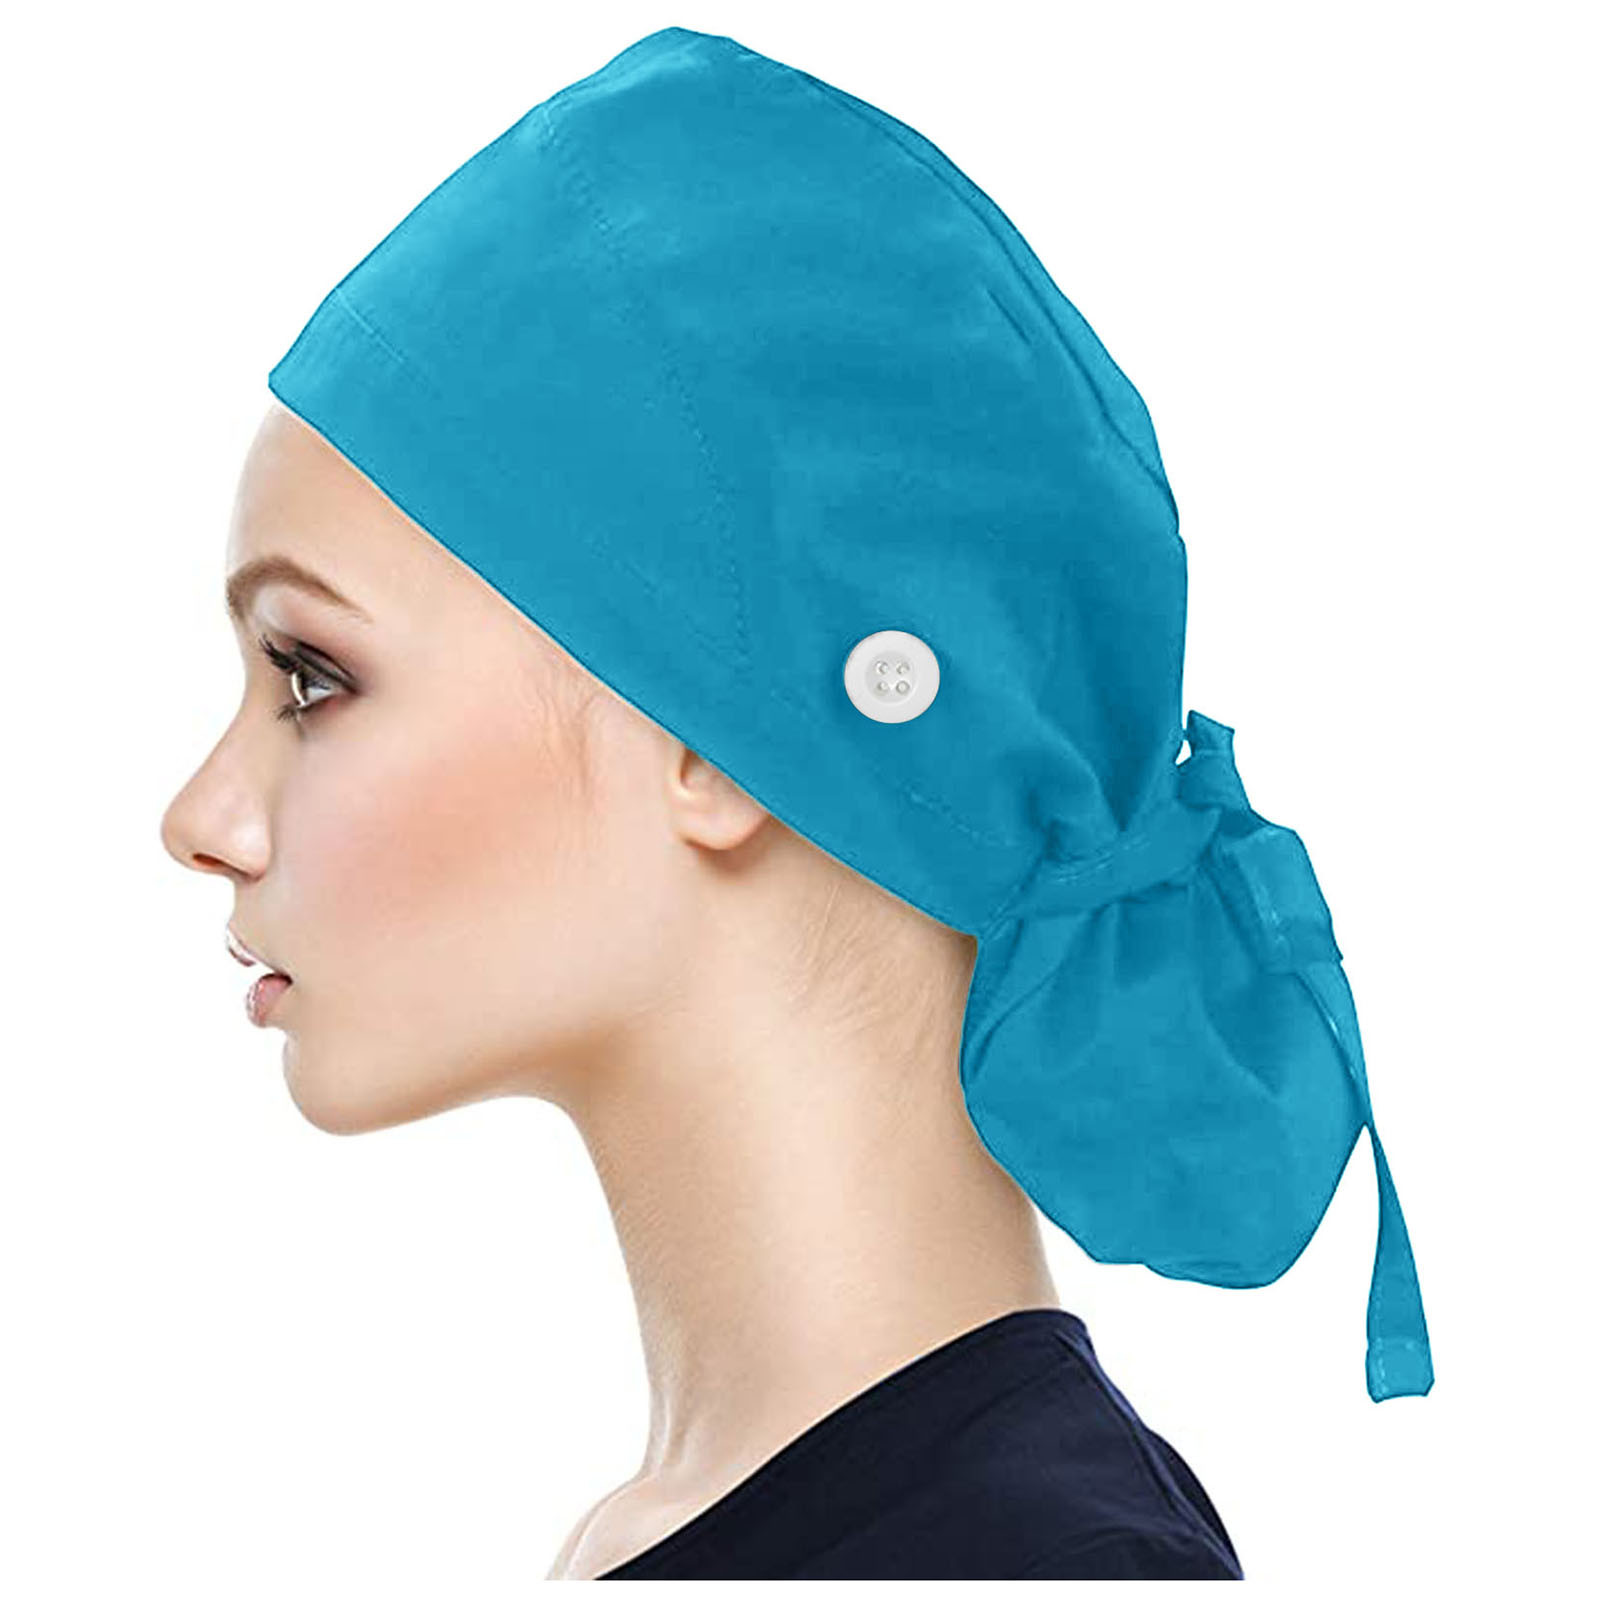 Unisex Nurse Hats For Women Cotton Hat Women Women's Clothings Women's Scarf/Shawls/Caps